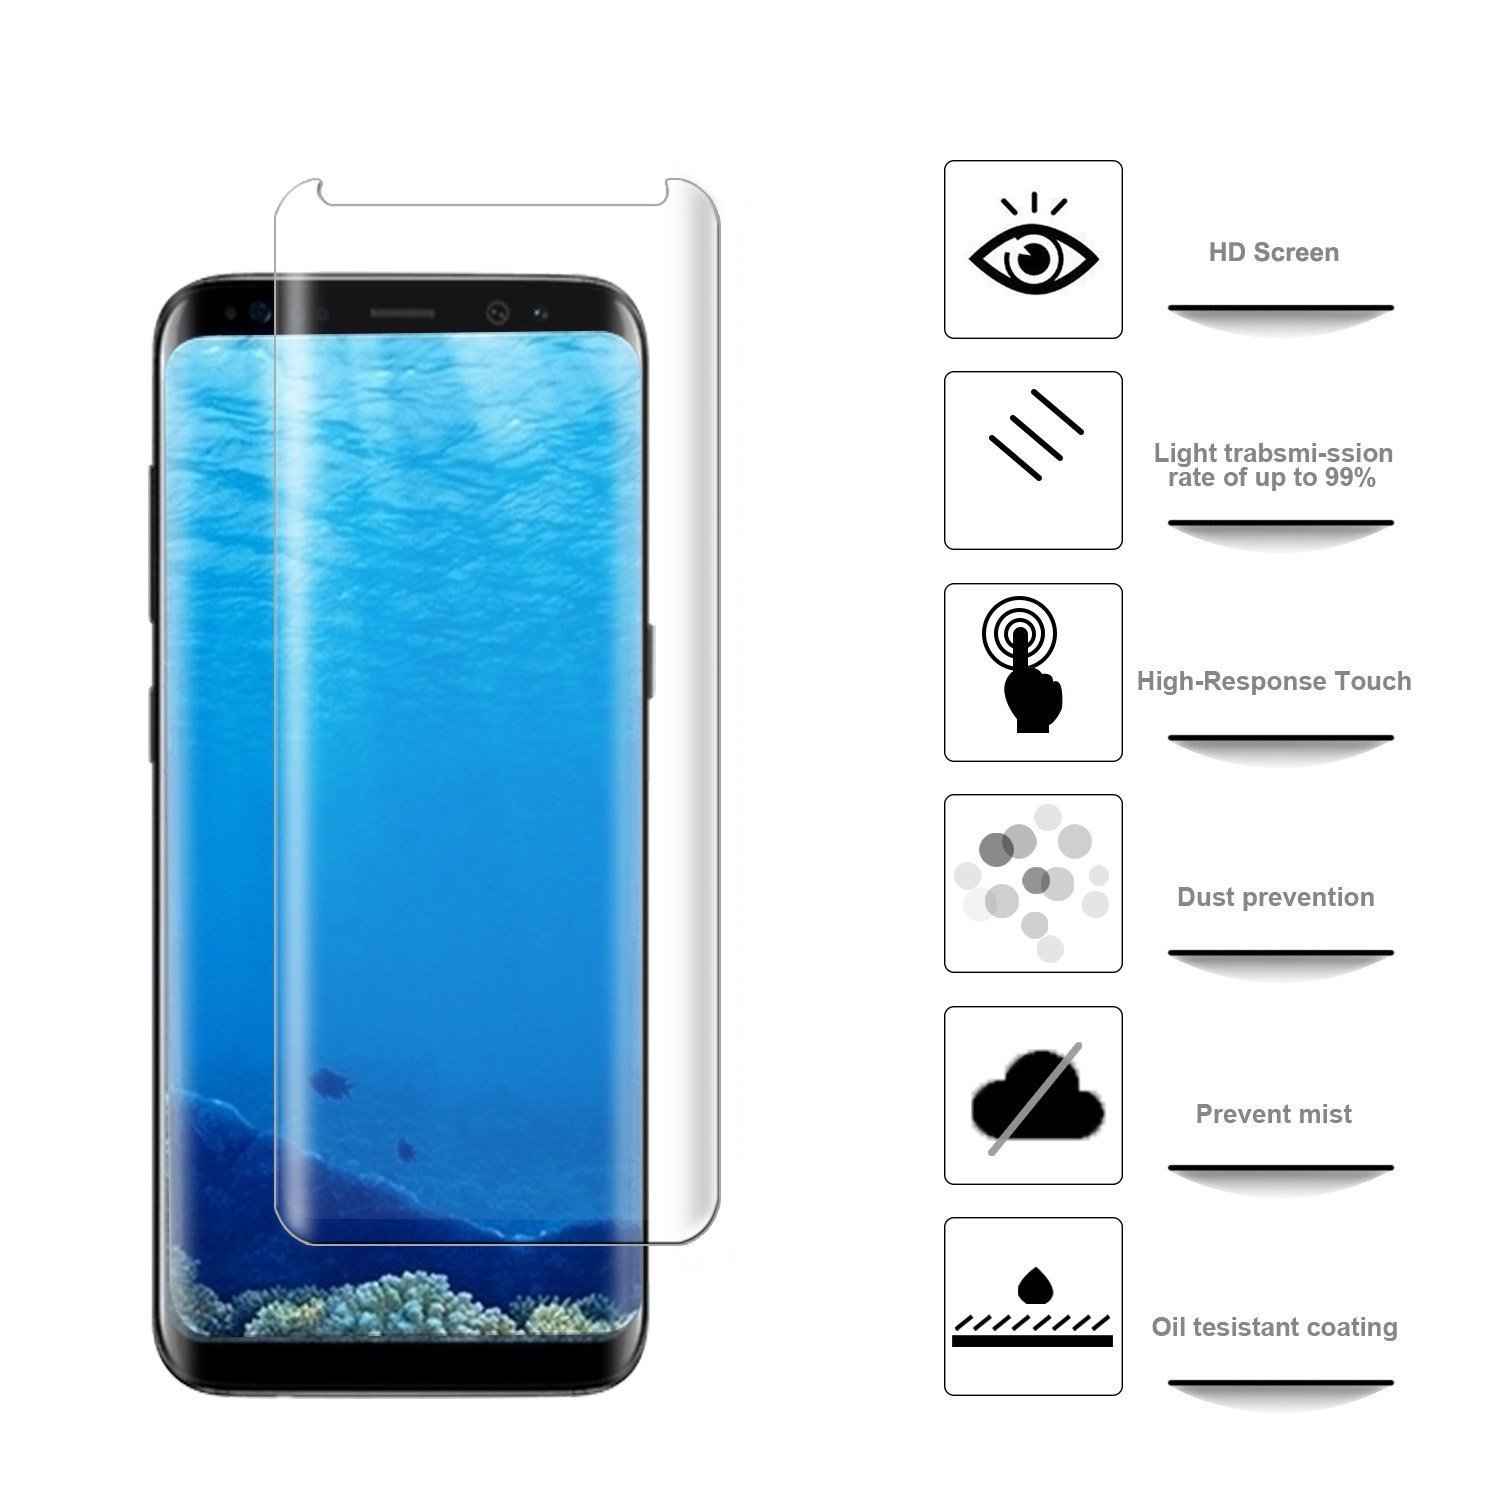 Amazon.in: Buy TrueUpgrade® Samsung S9 Plus / S9 + 5D Half Screen Body  Clear Tranparent Tempered Glass Screen Protector Guard For Samsung Galaxy  S9 Plus / S9 + - Samsung S9 Plus